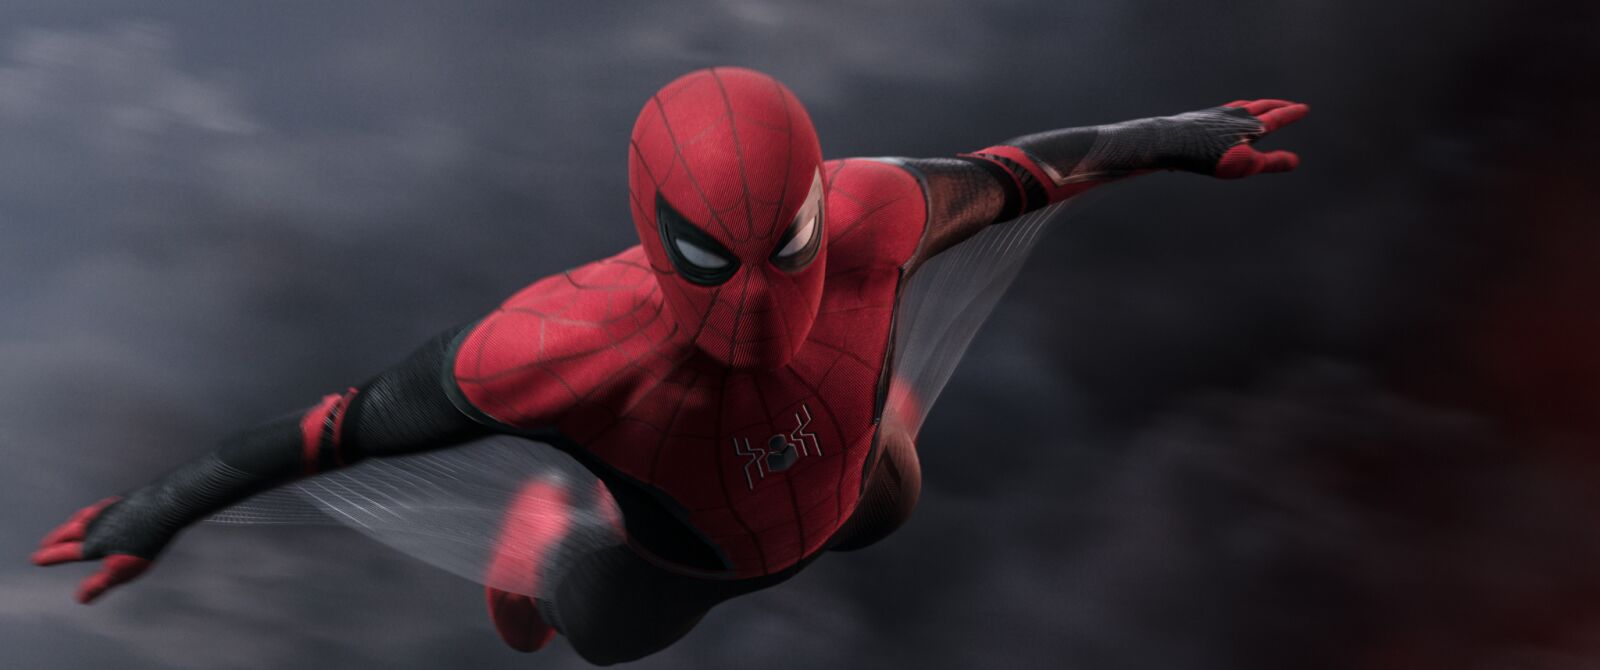 Spider-Man: Far From Home earns a landmark $1 billion at the box office